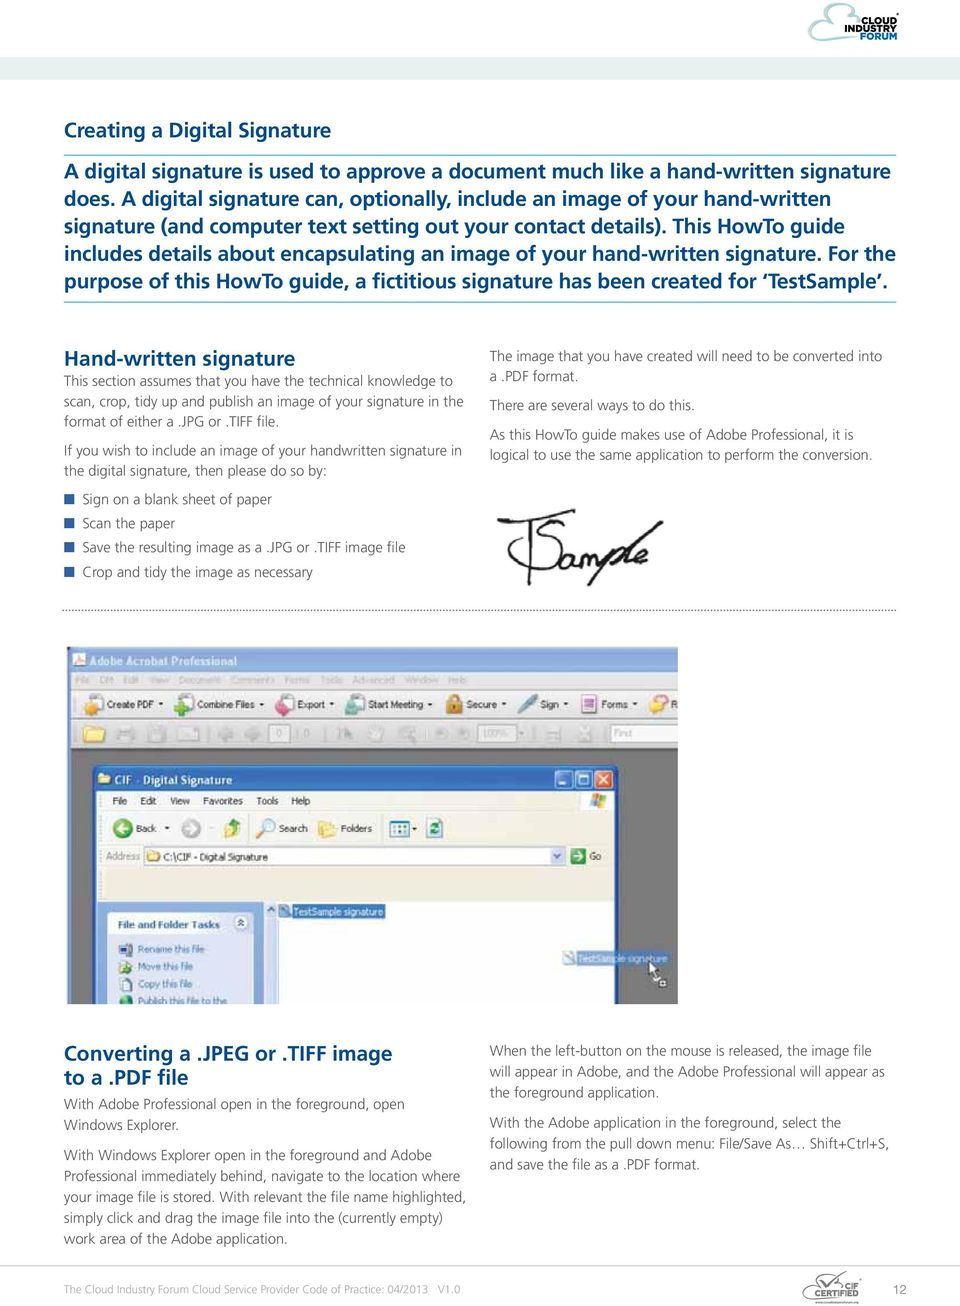 A digital signature can, optionally, include an image of your hand-written signature (and computer text setting out your contact details).